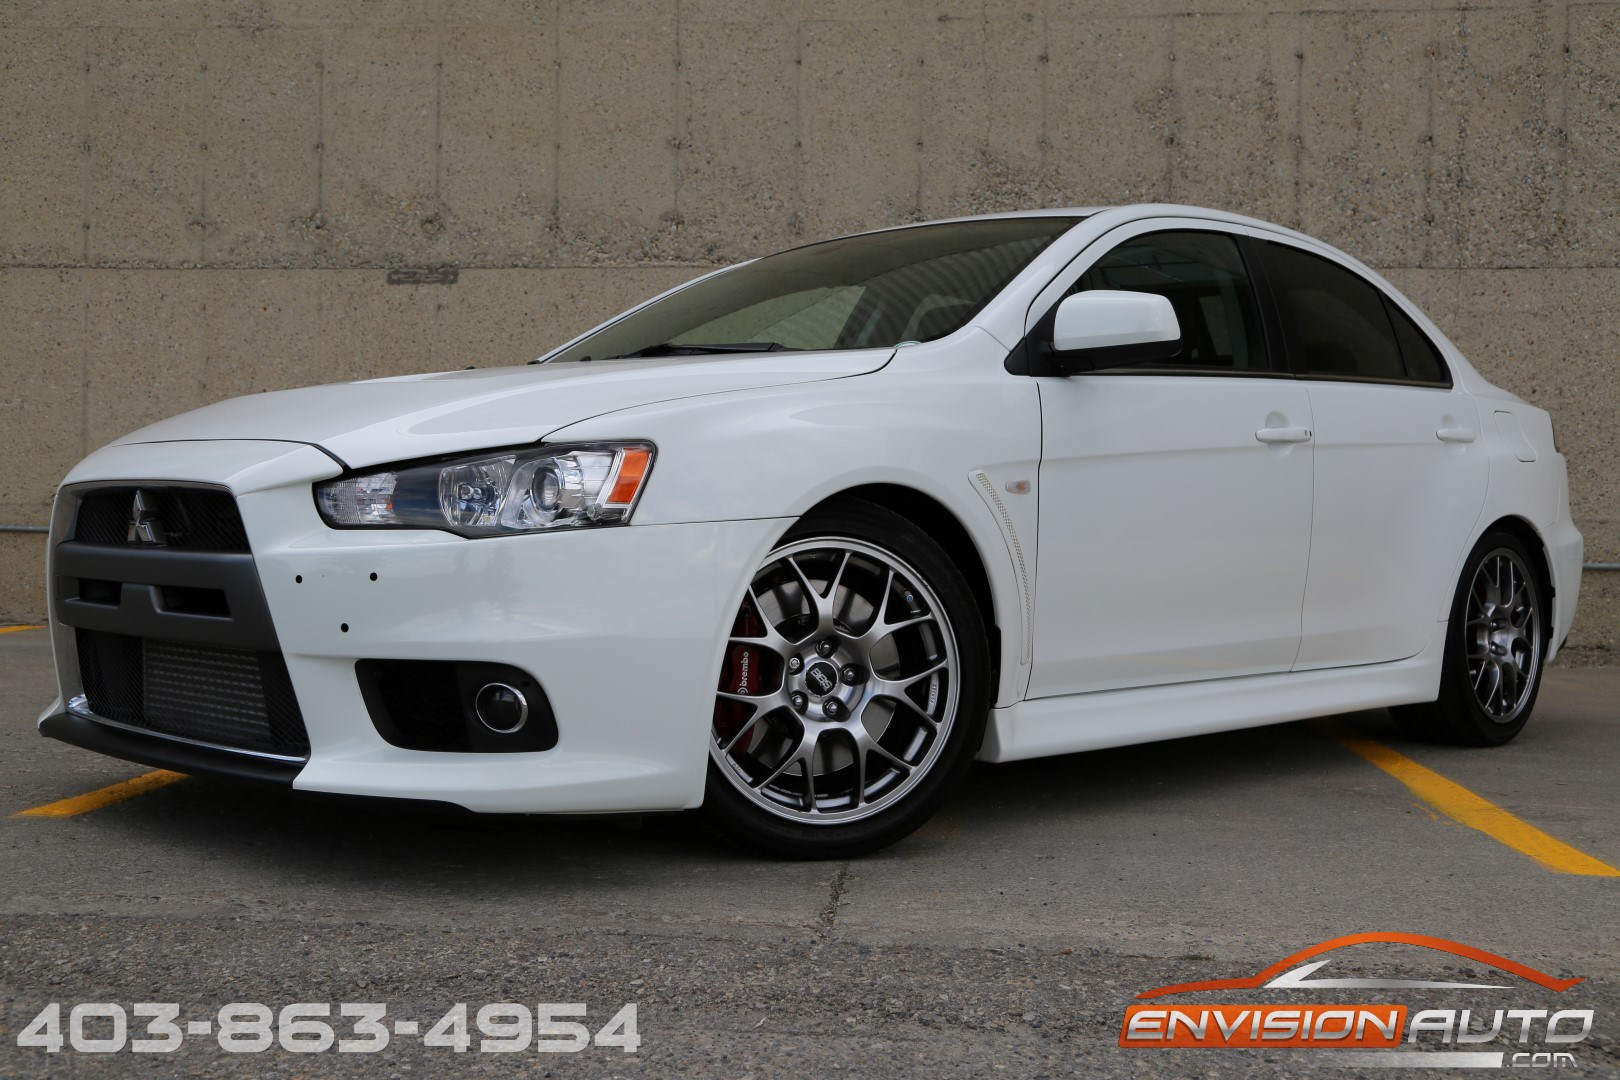 2010 mitsubishi lancer evolution mr evo x modded 380. Black Bedroom Furniture Sets. Home Design Ideas